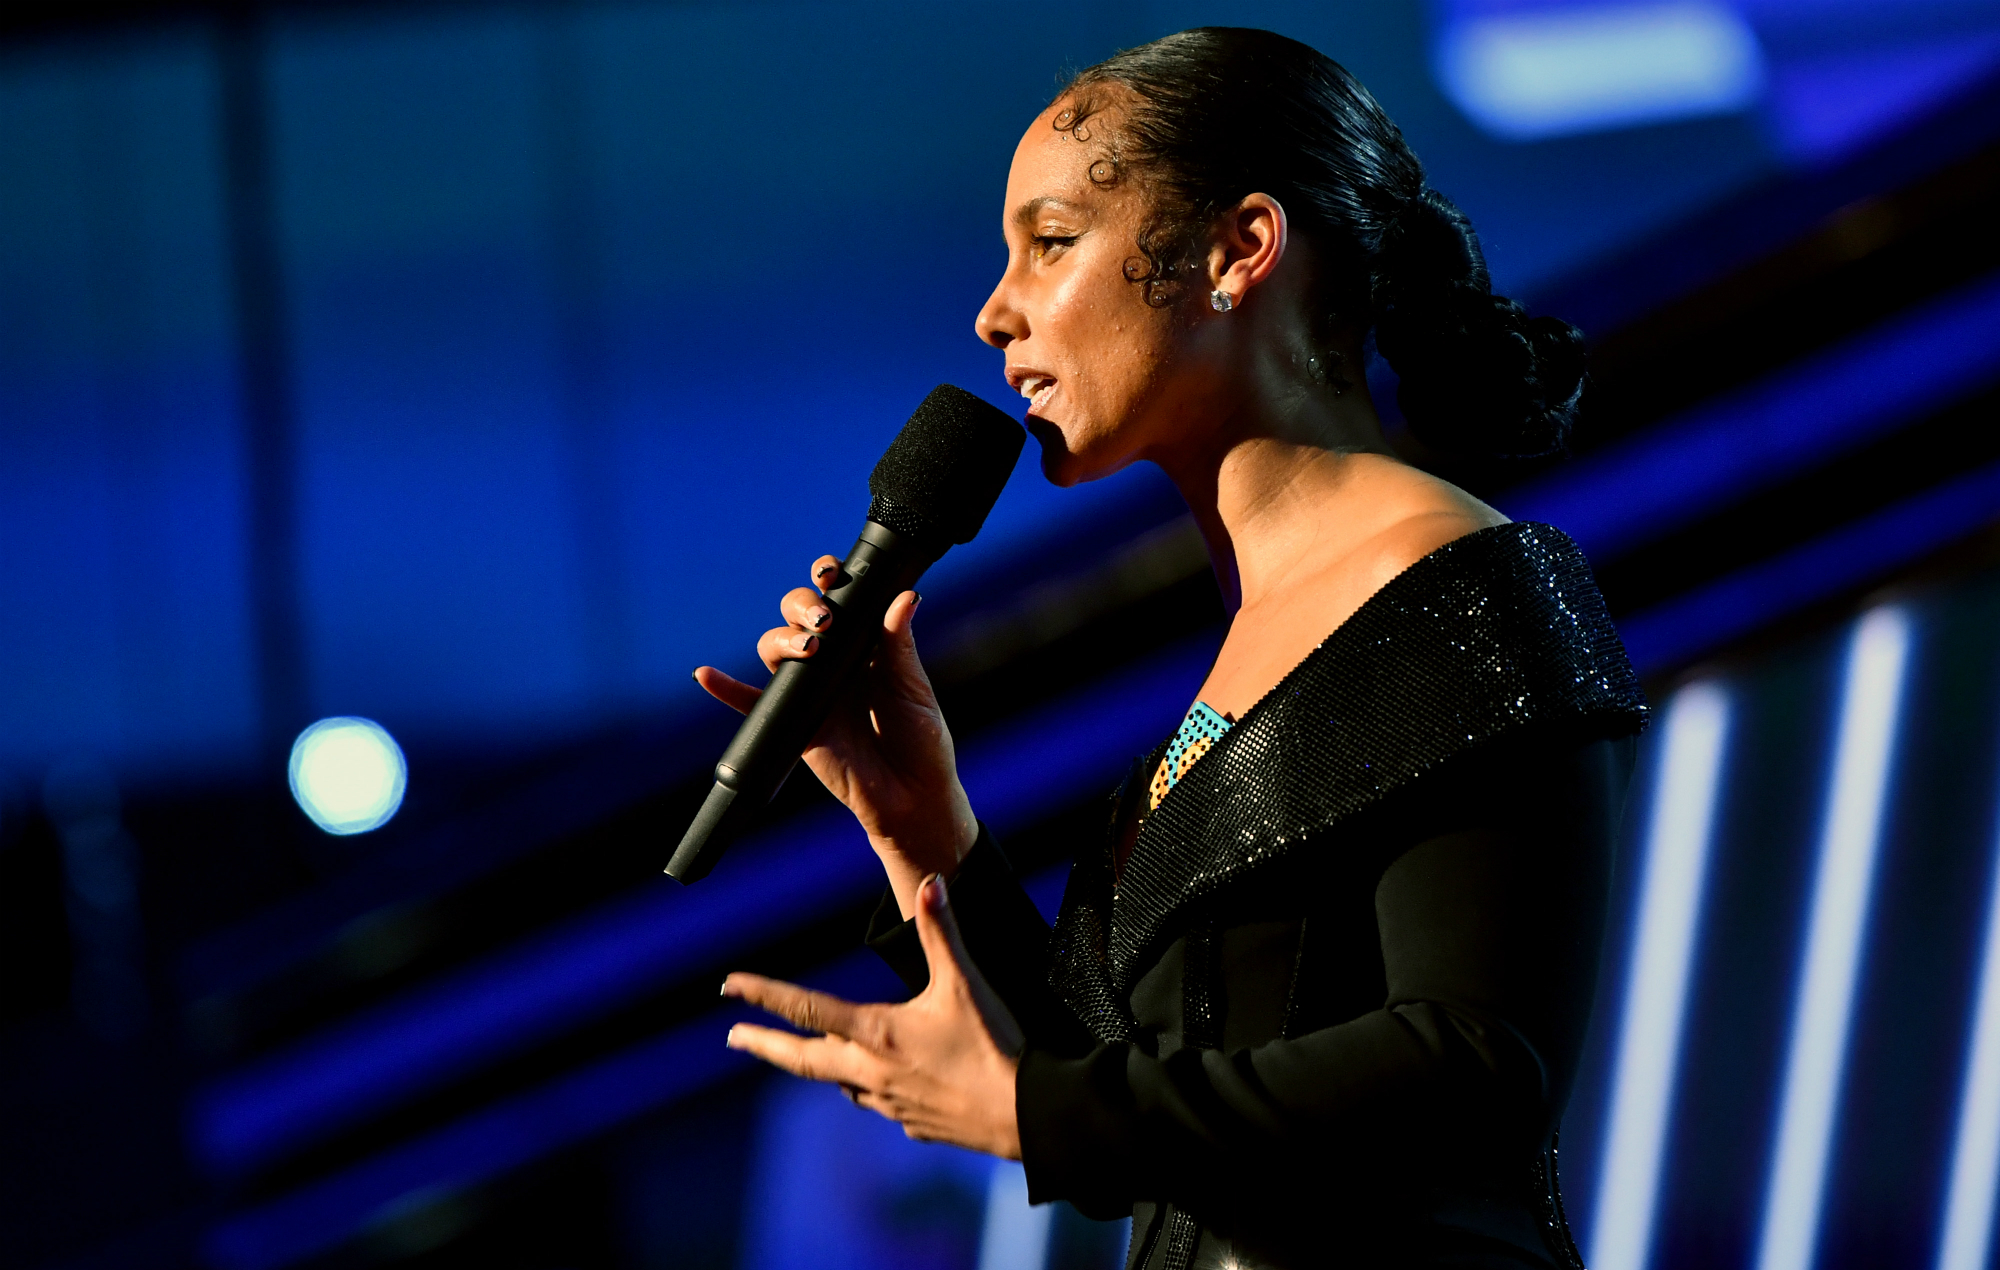 Alicia Keys, Summer Walker and more call on Biden administration to launch racial justice initiative